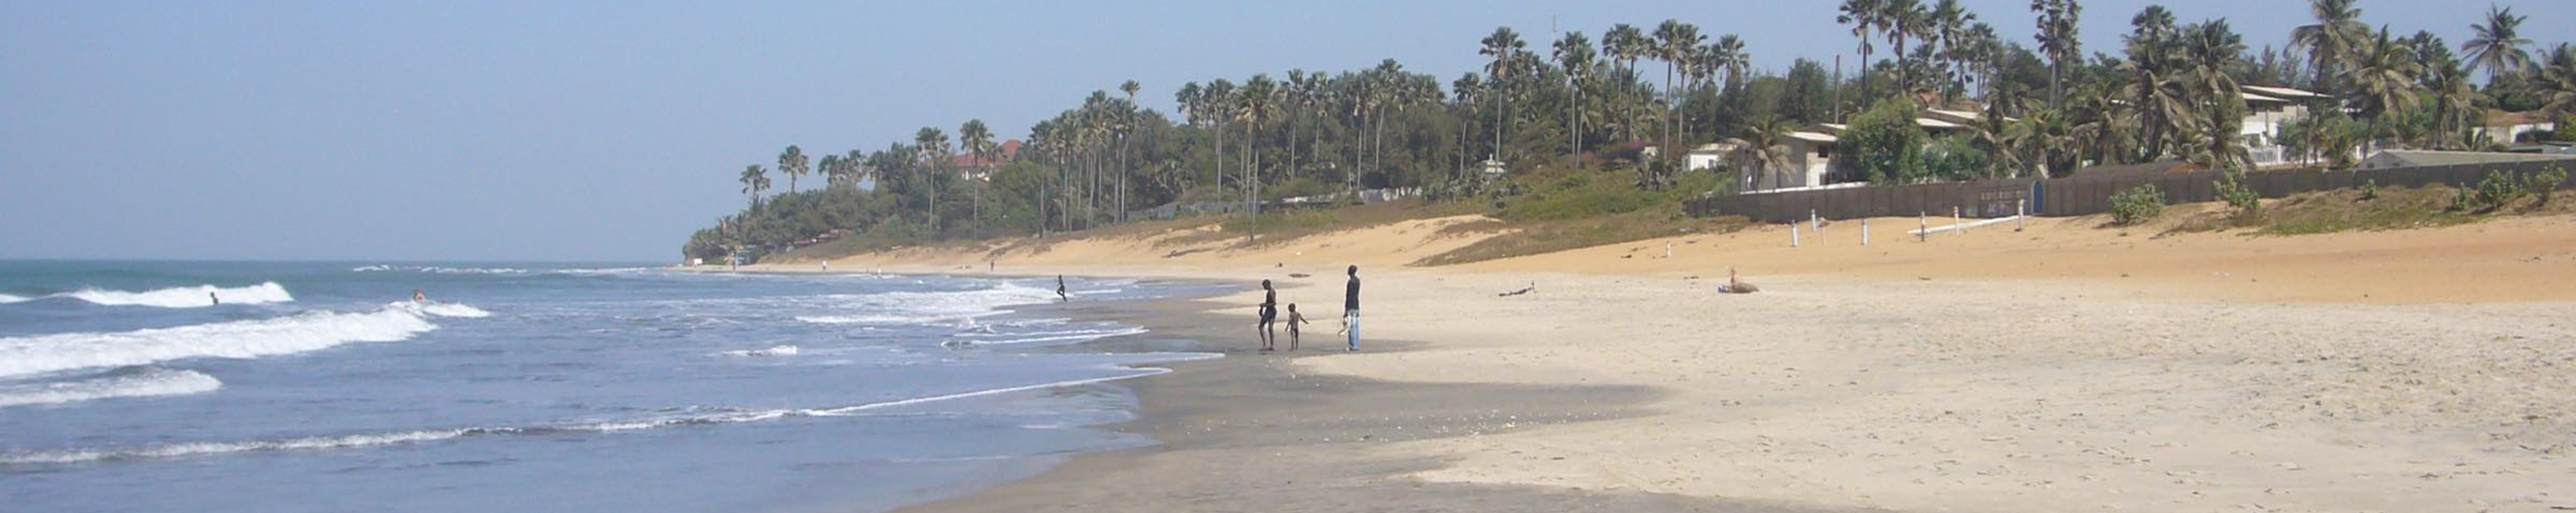 Privé rondreis Natuurpracht & Tradities van Gambia en Senegal